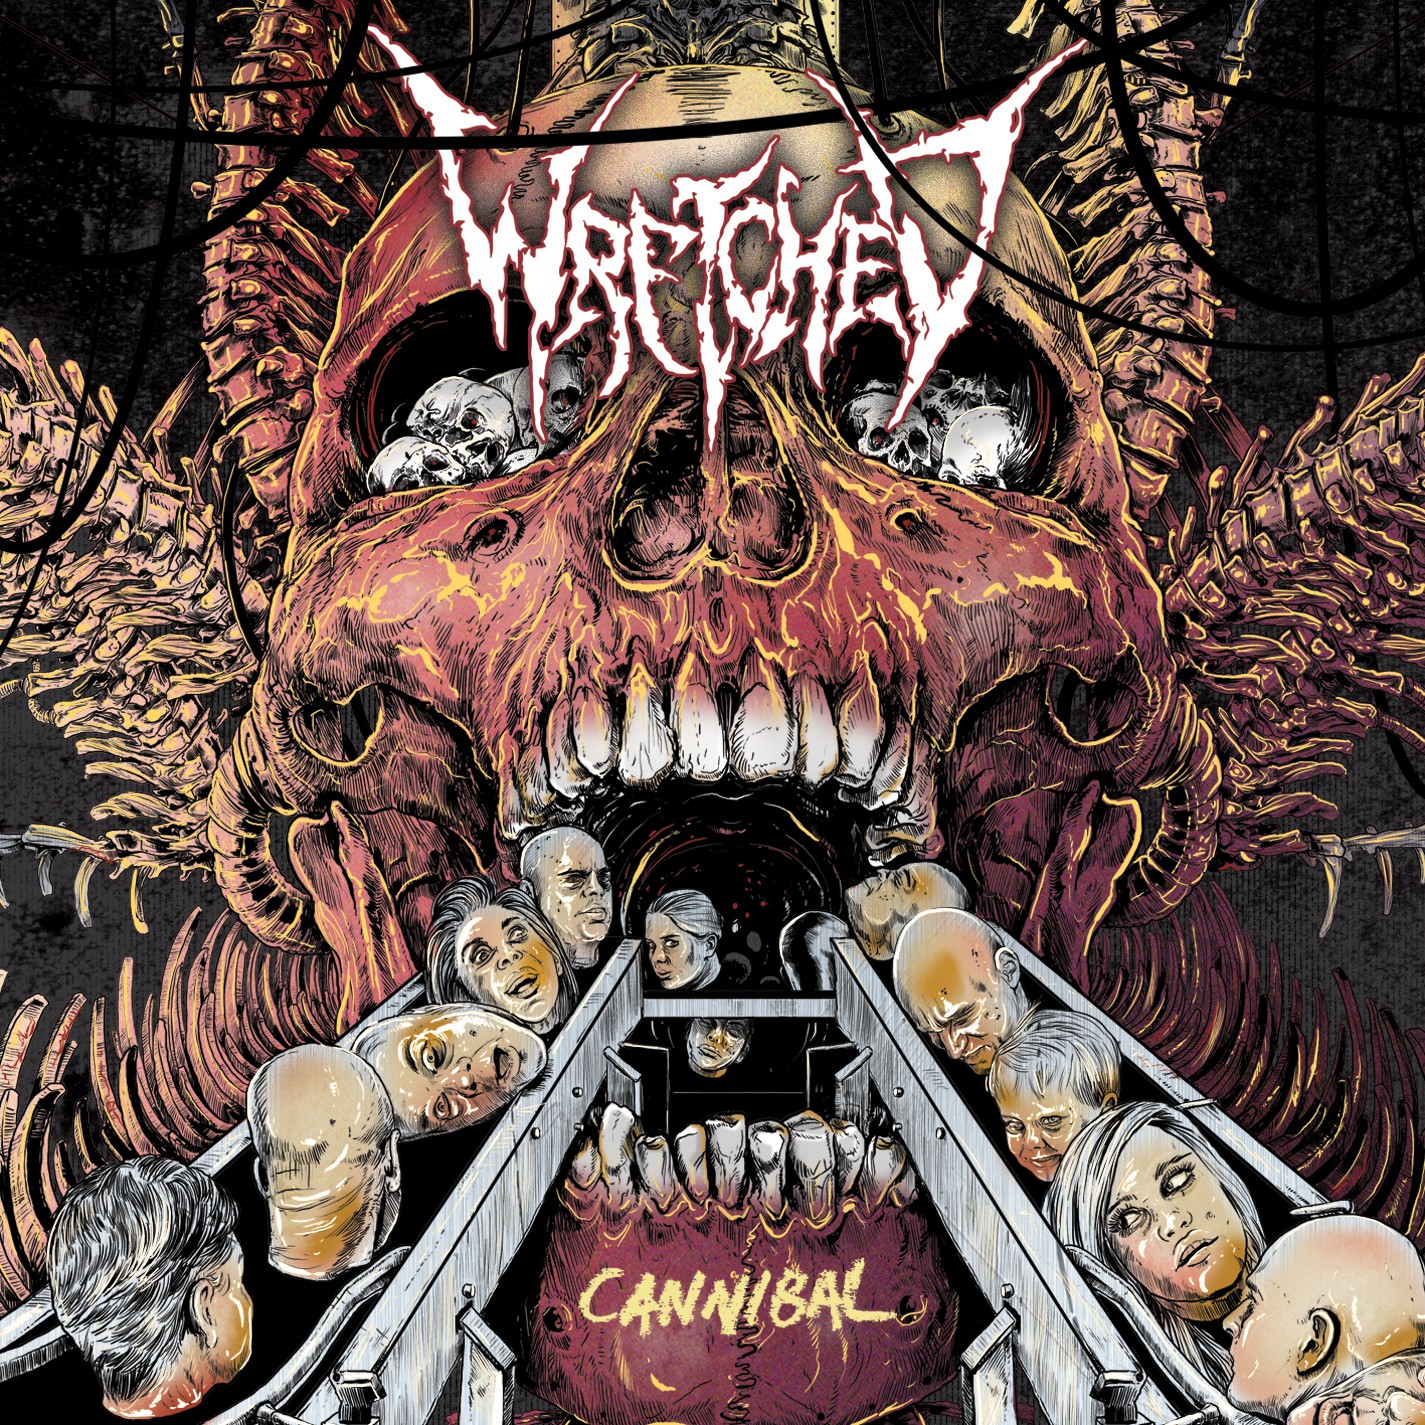 Blood Falling Wallpaper Wretched Cannibal Review Angry Metal Guy